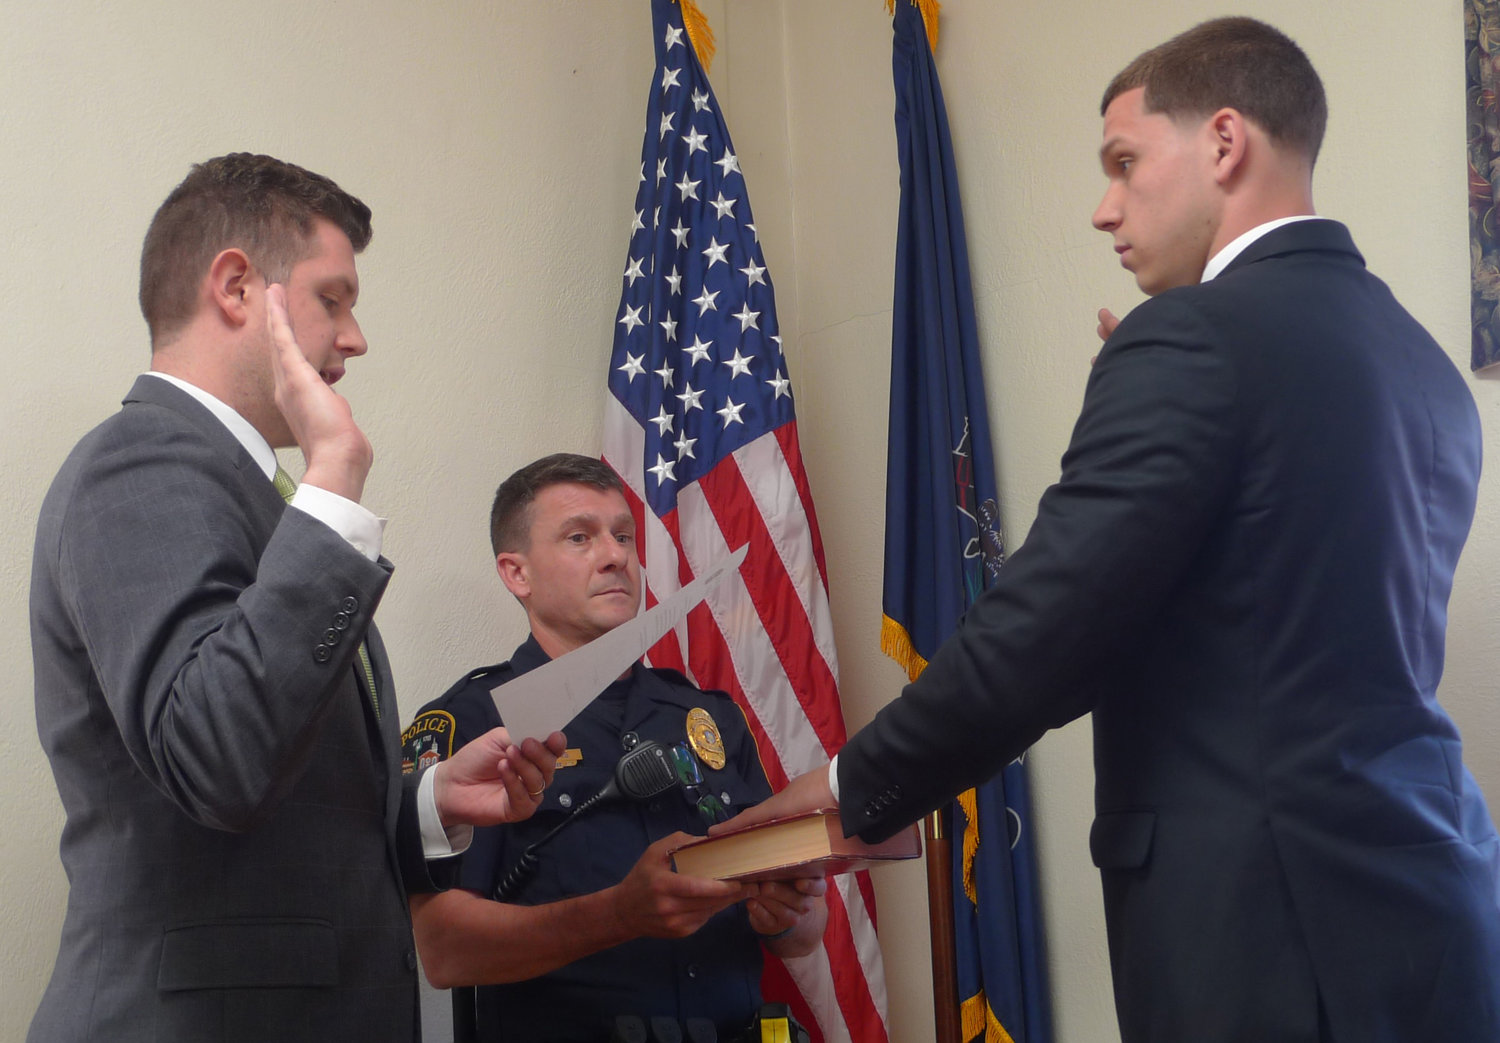 Middletown Mayor James H. Curry III swears in the borough's newest part-time police officer, John Marsh, as interim Police Chief Dennis Morris observes (middle) during borough council's May 8 meeting.